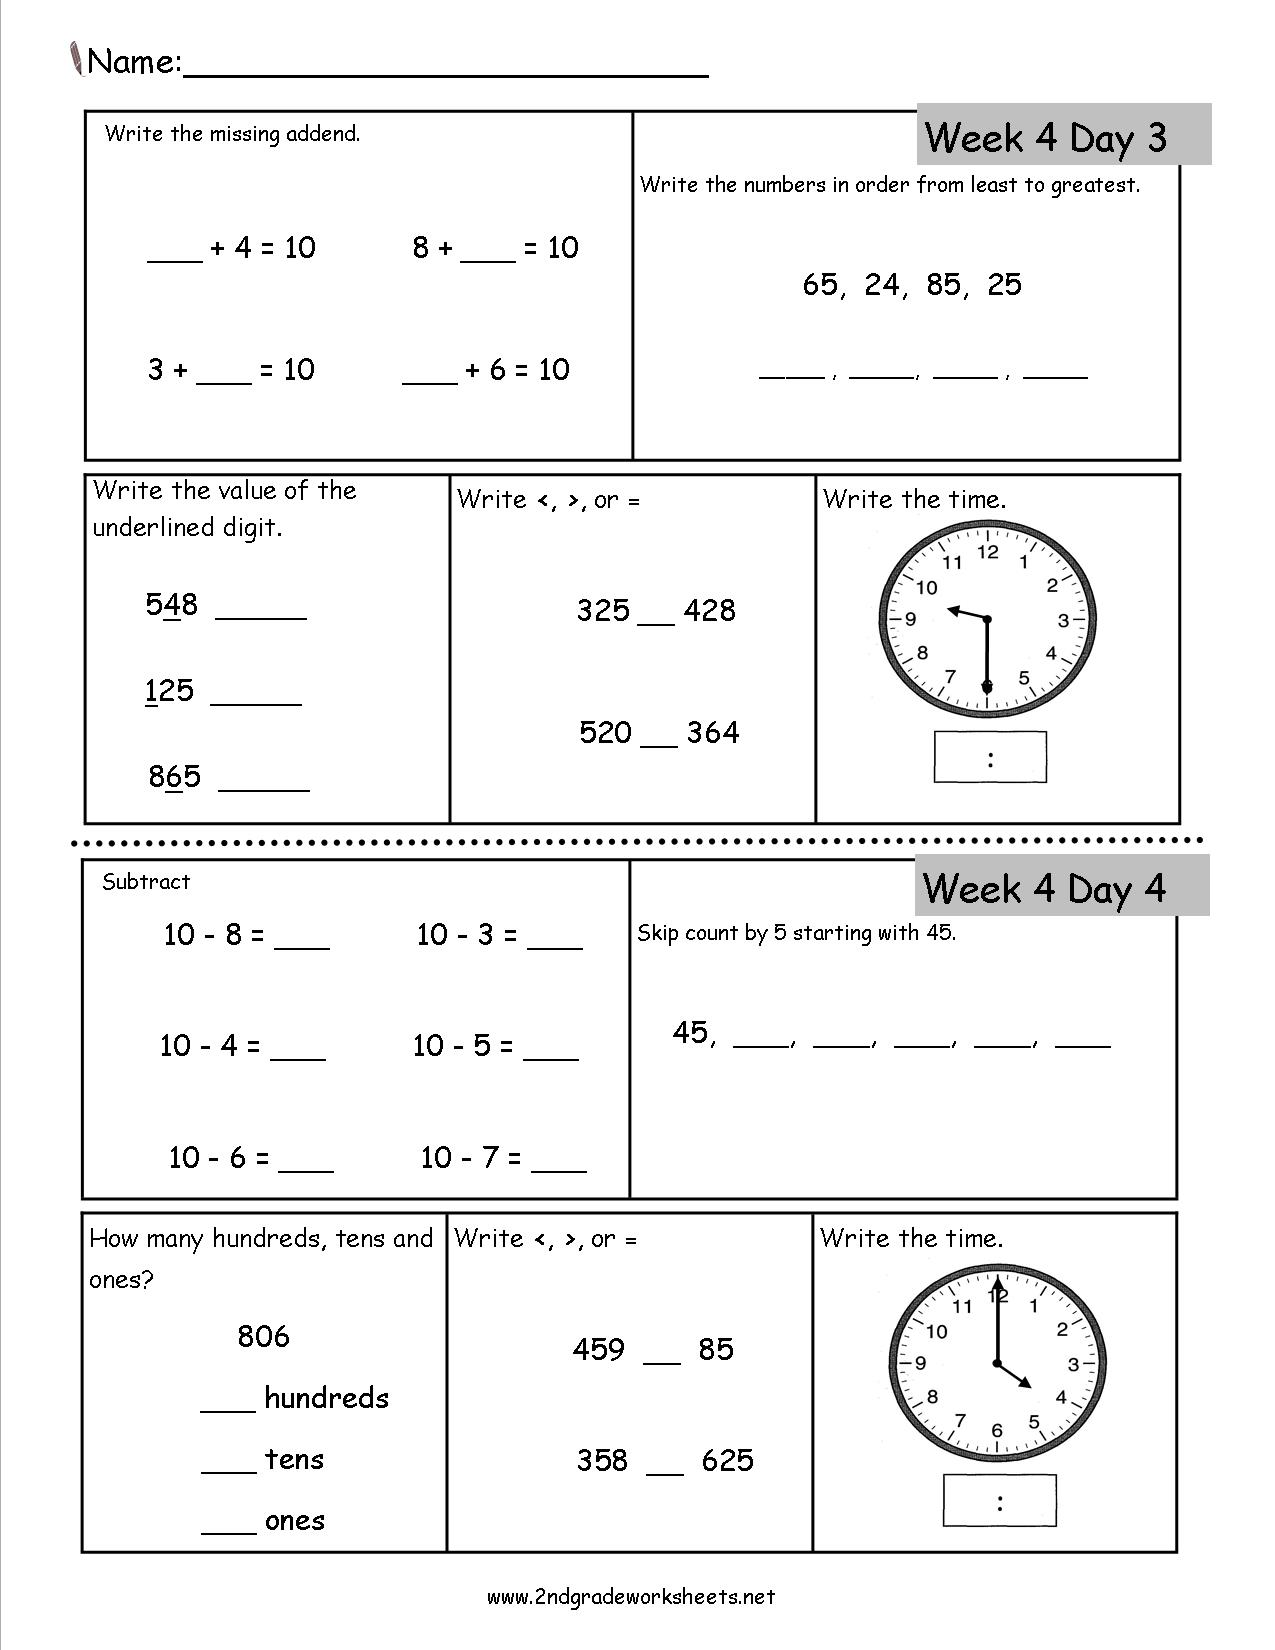 Worksheet Math Worksheet For 2nd Grade lesson plans math and worksheets on pinterest winter for 1st 2nd grade missing addends